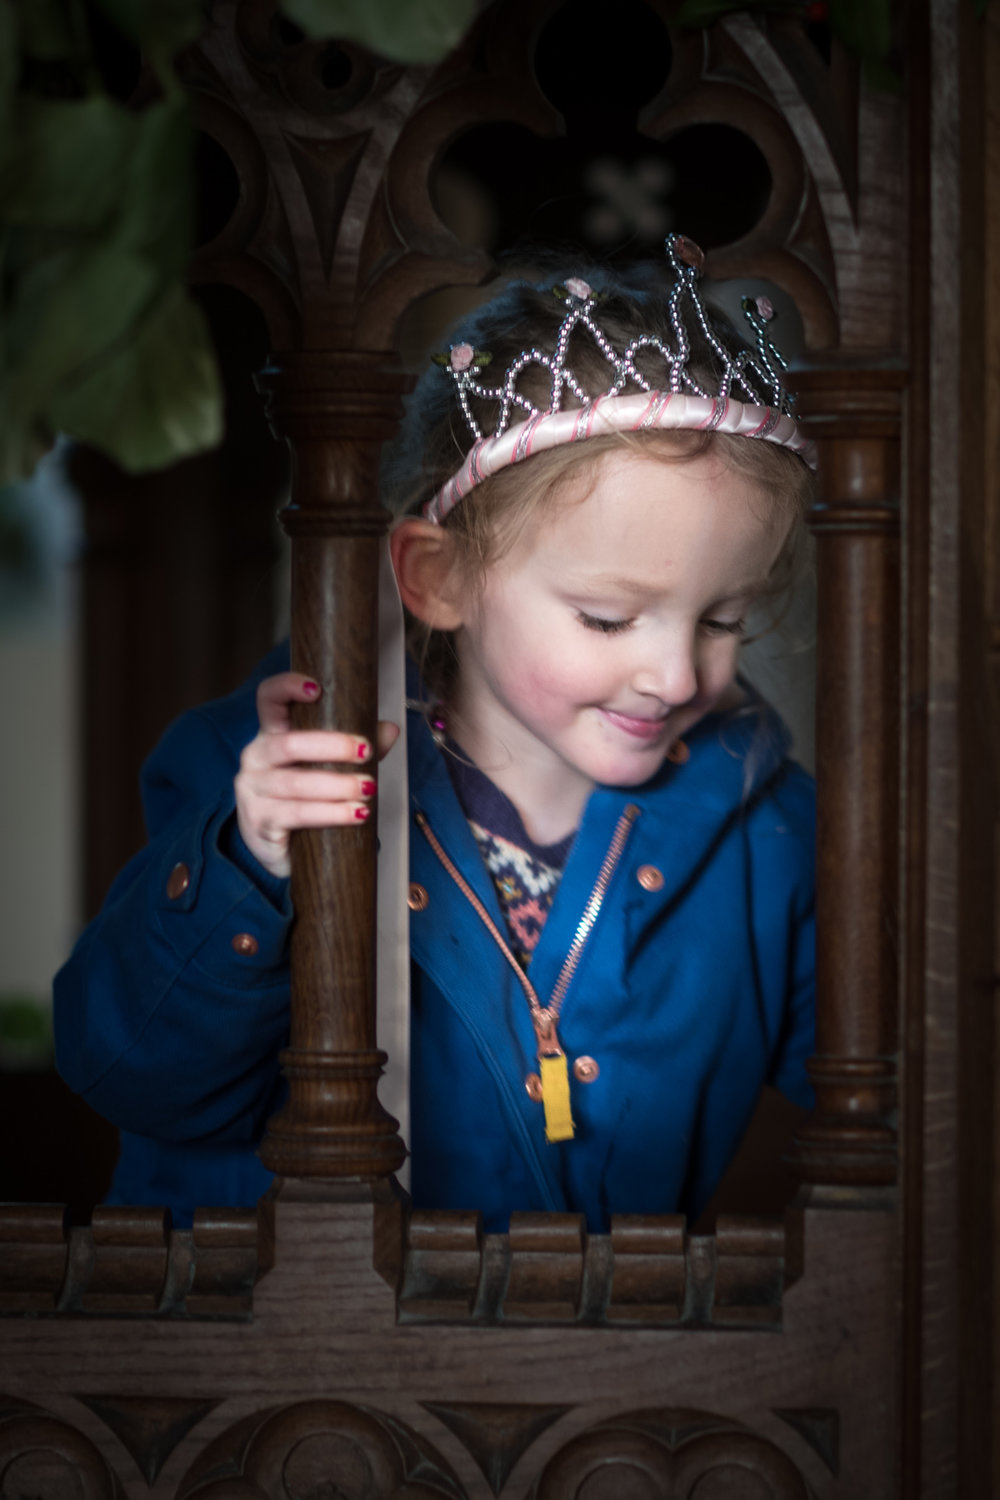 The Princess in the Pulpit - Leica M10 with 50mm Summilux M Asph 1/60 ISO 400